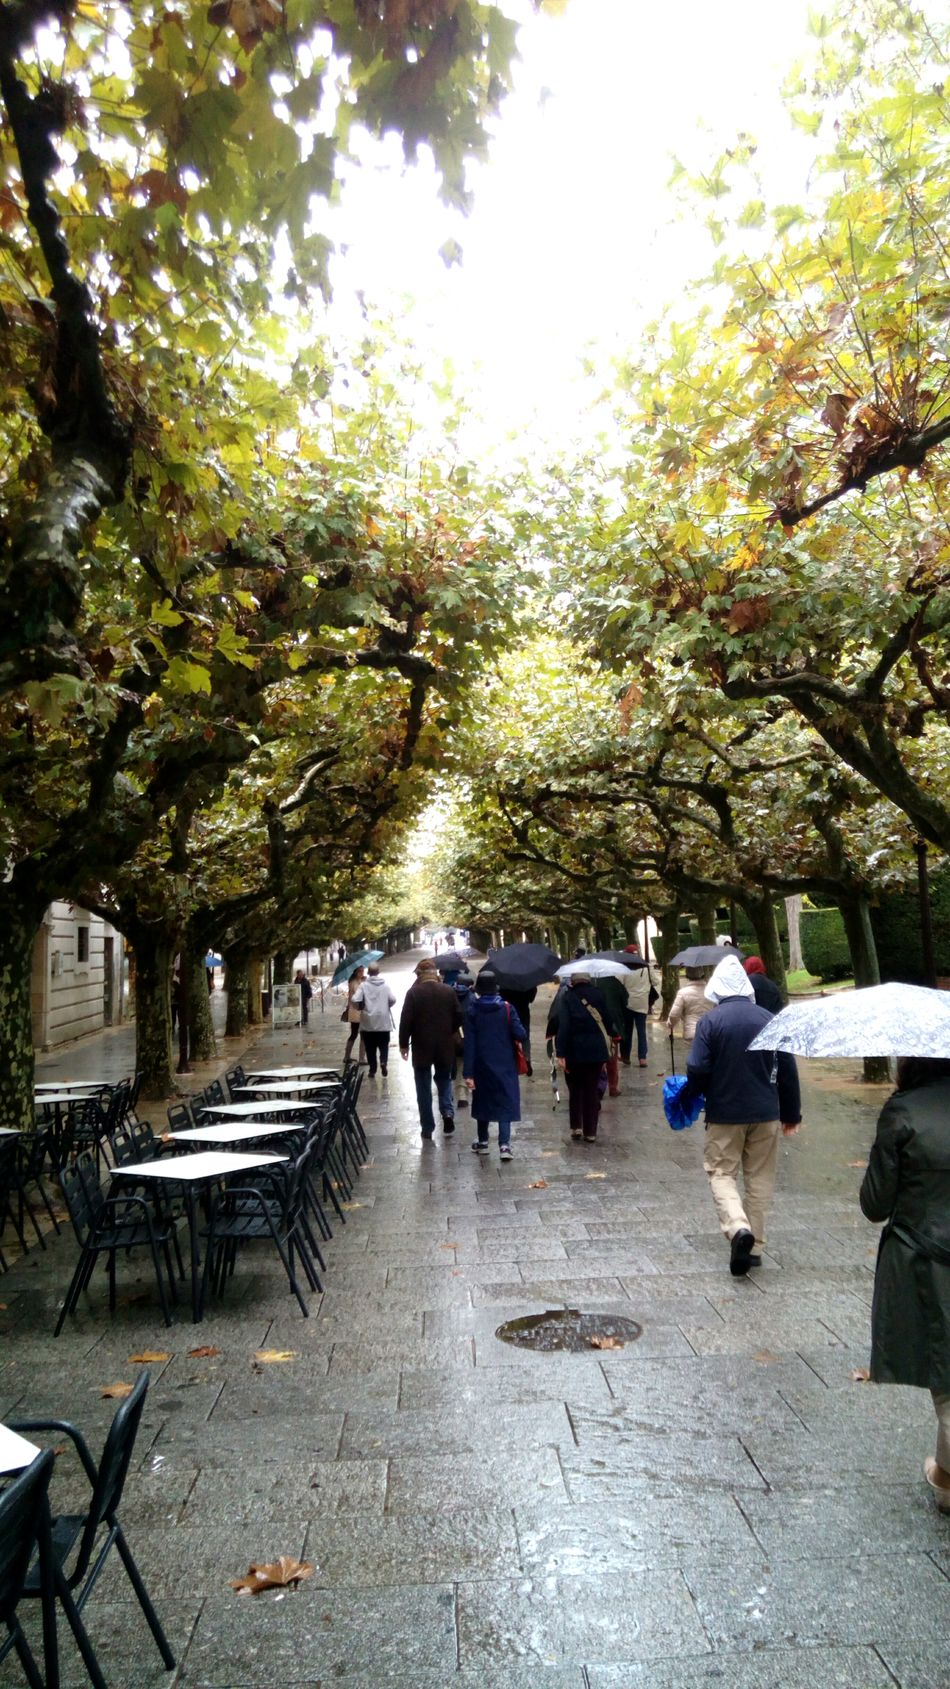 Tree Real People Outdoors People Day Large Group Of People Burgos Rain Rainy Days Walking Espolon Adapted To The City TCPM